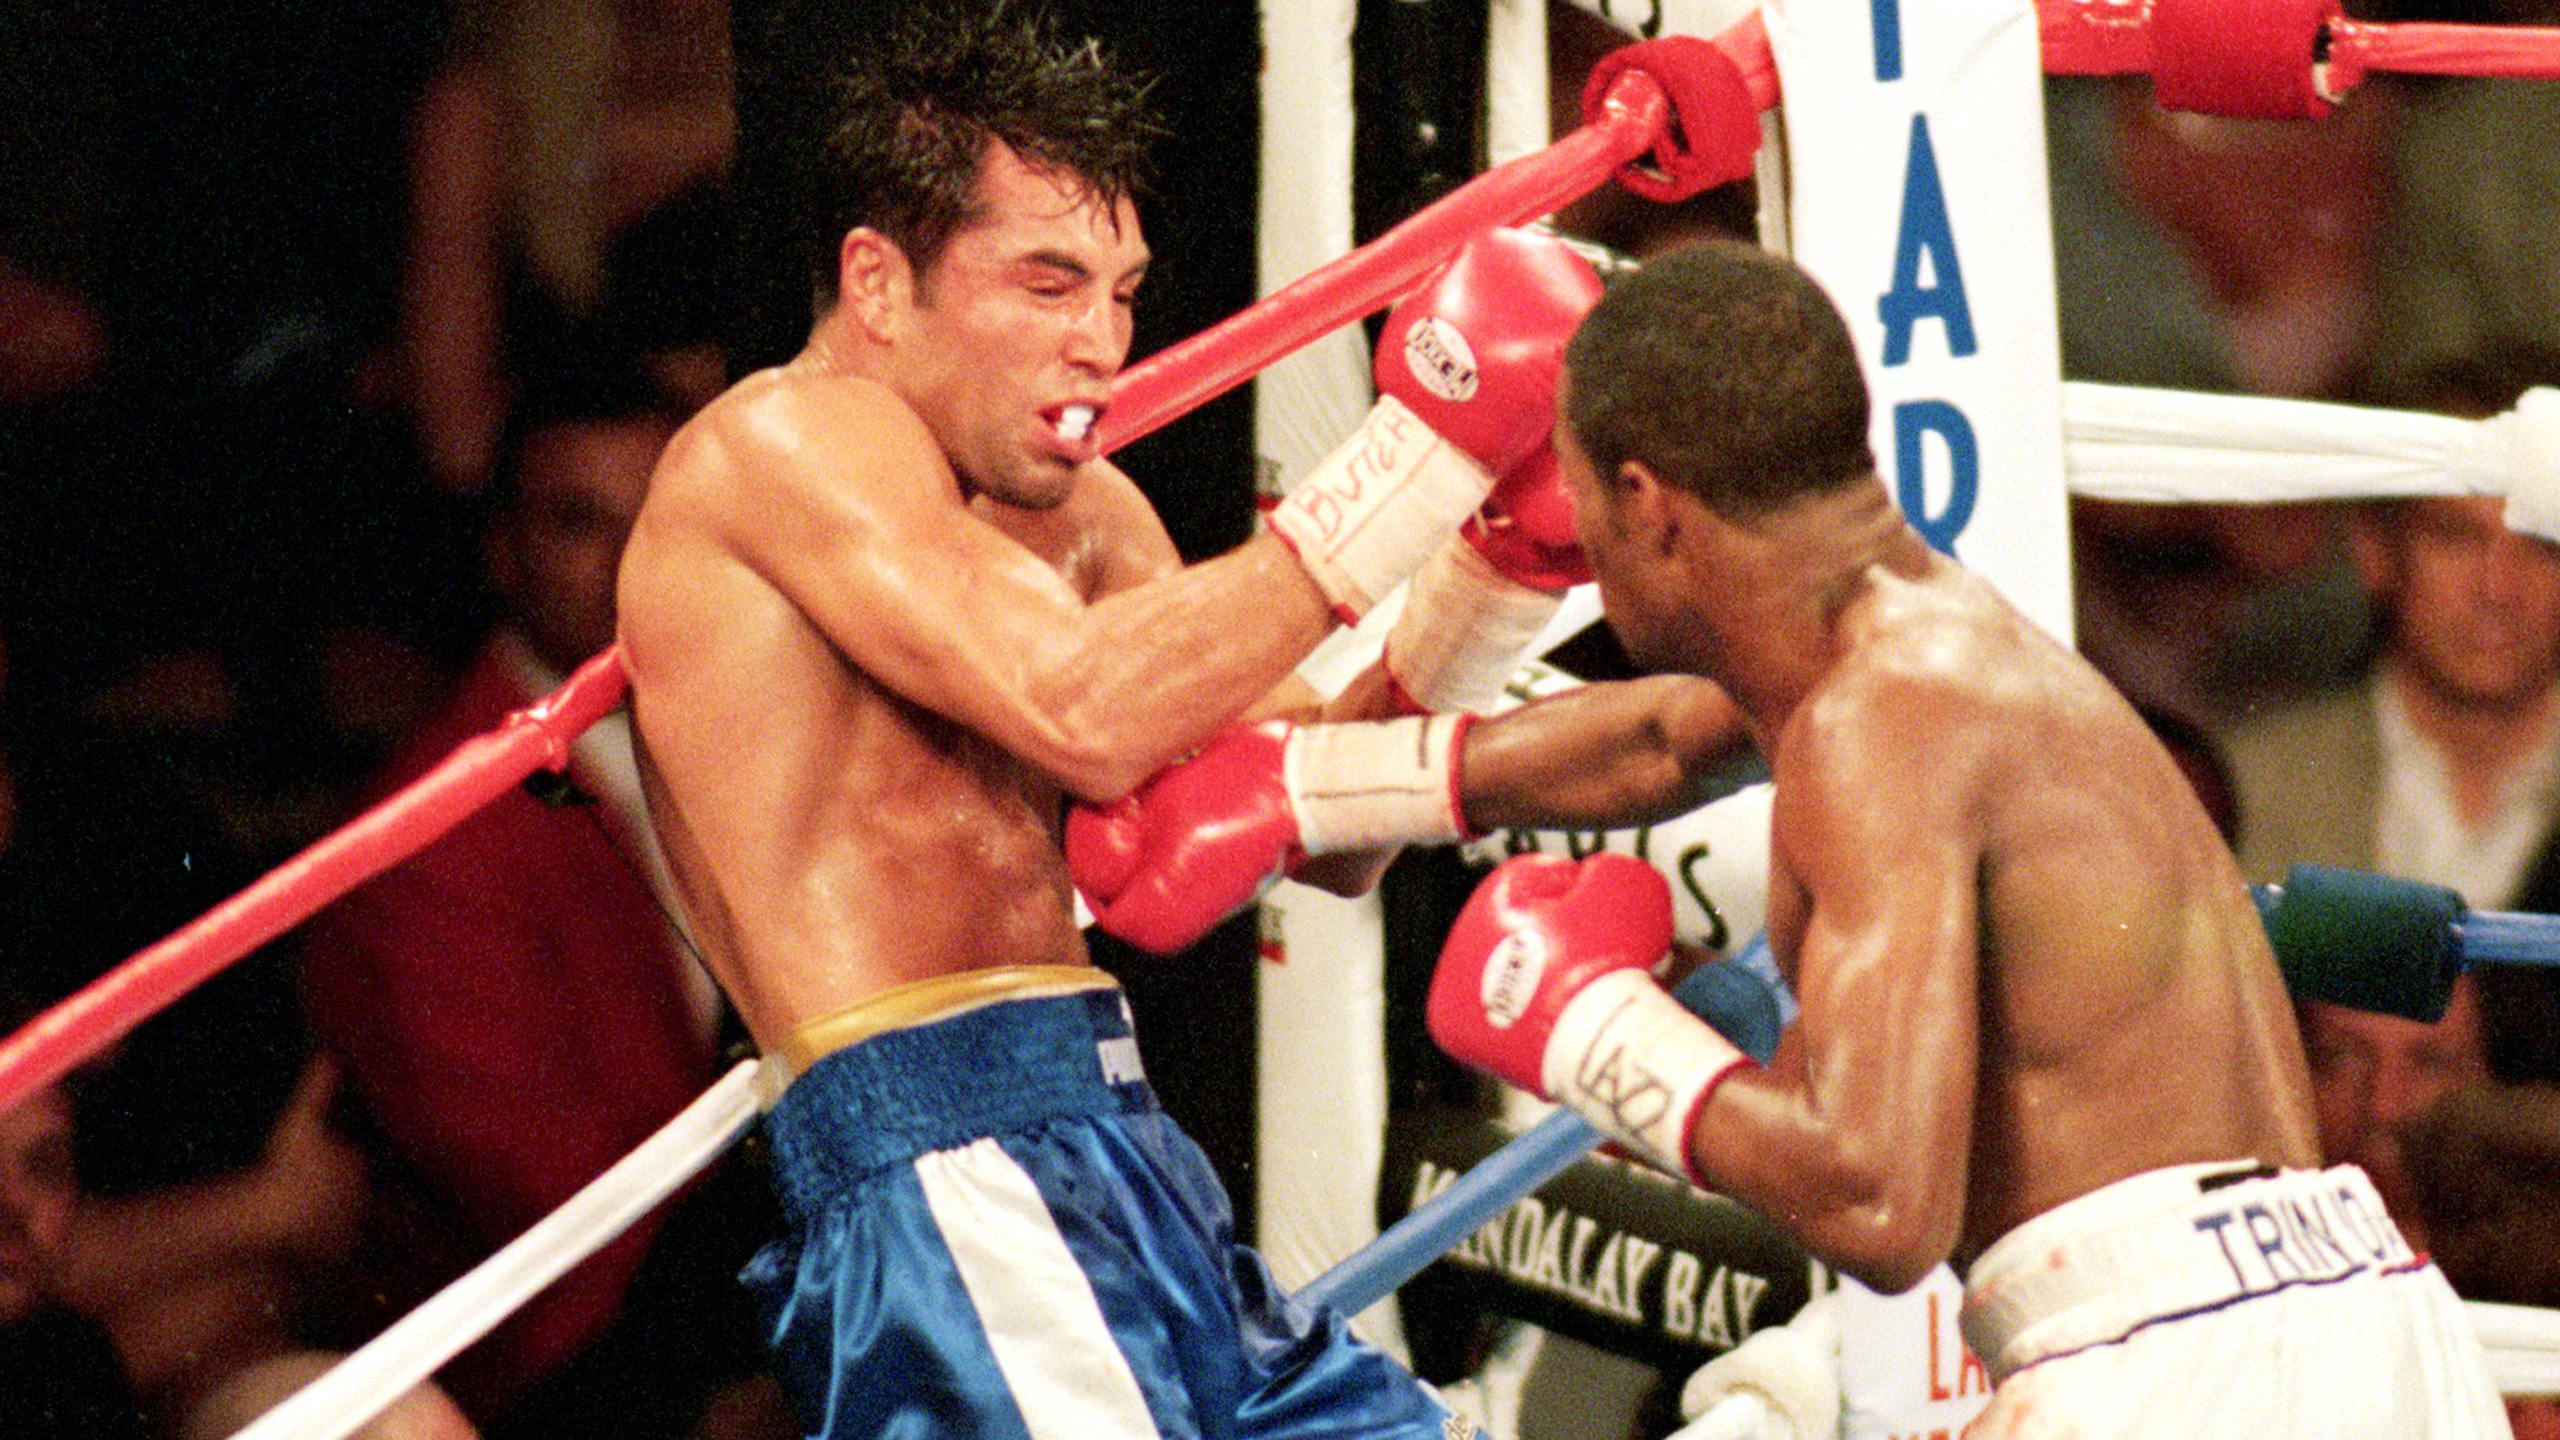 Oscar De La Hoya vs. Felix Trinidad (re-air)